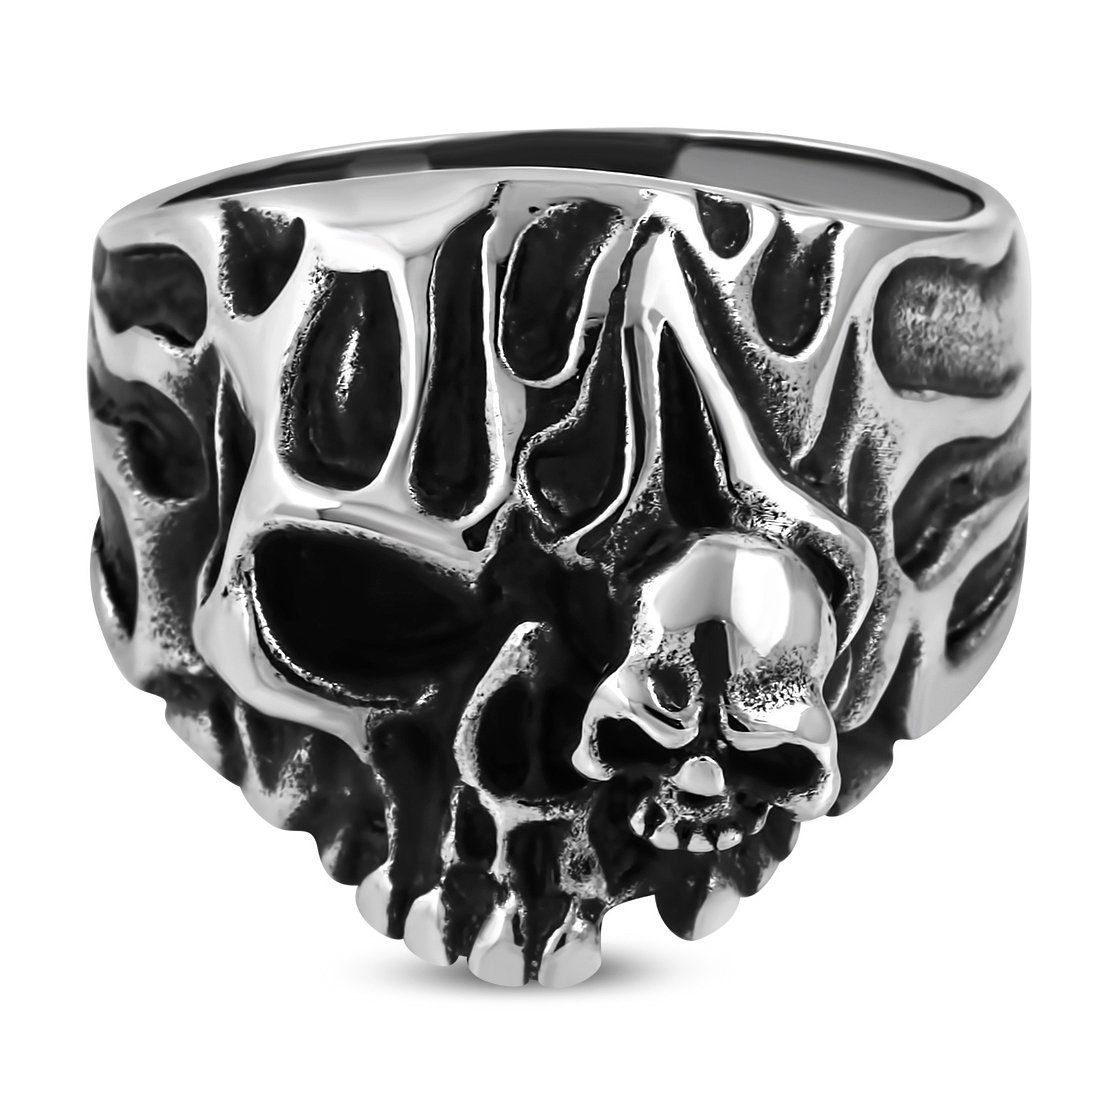 Stainless Steel 2 Color Flaming Ghost Skull Biker Ring